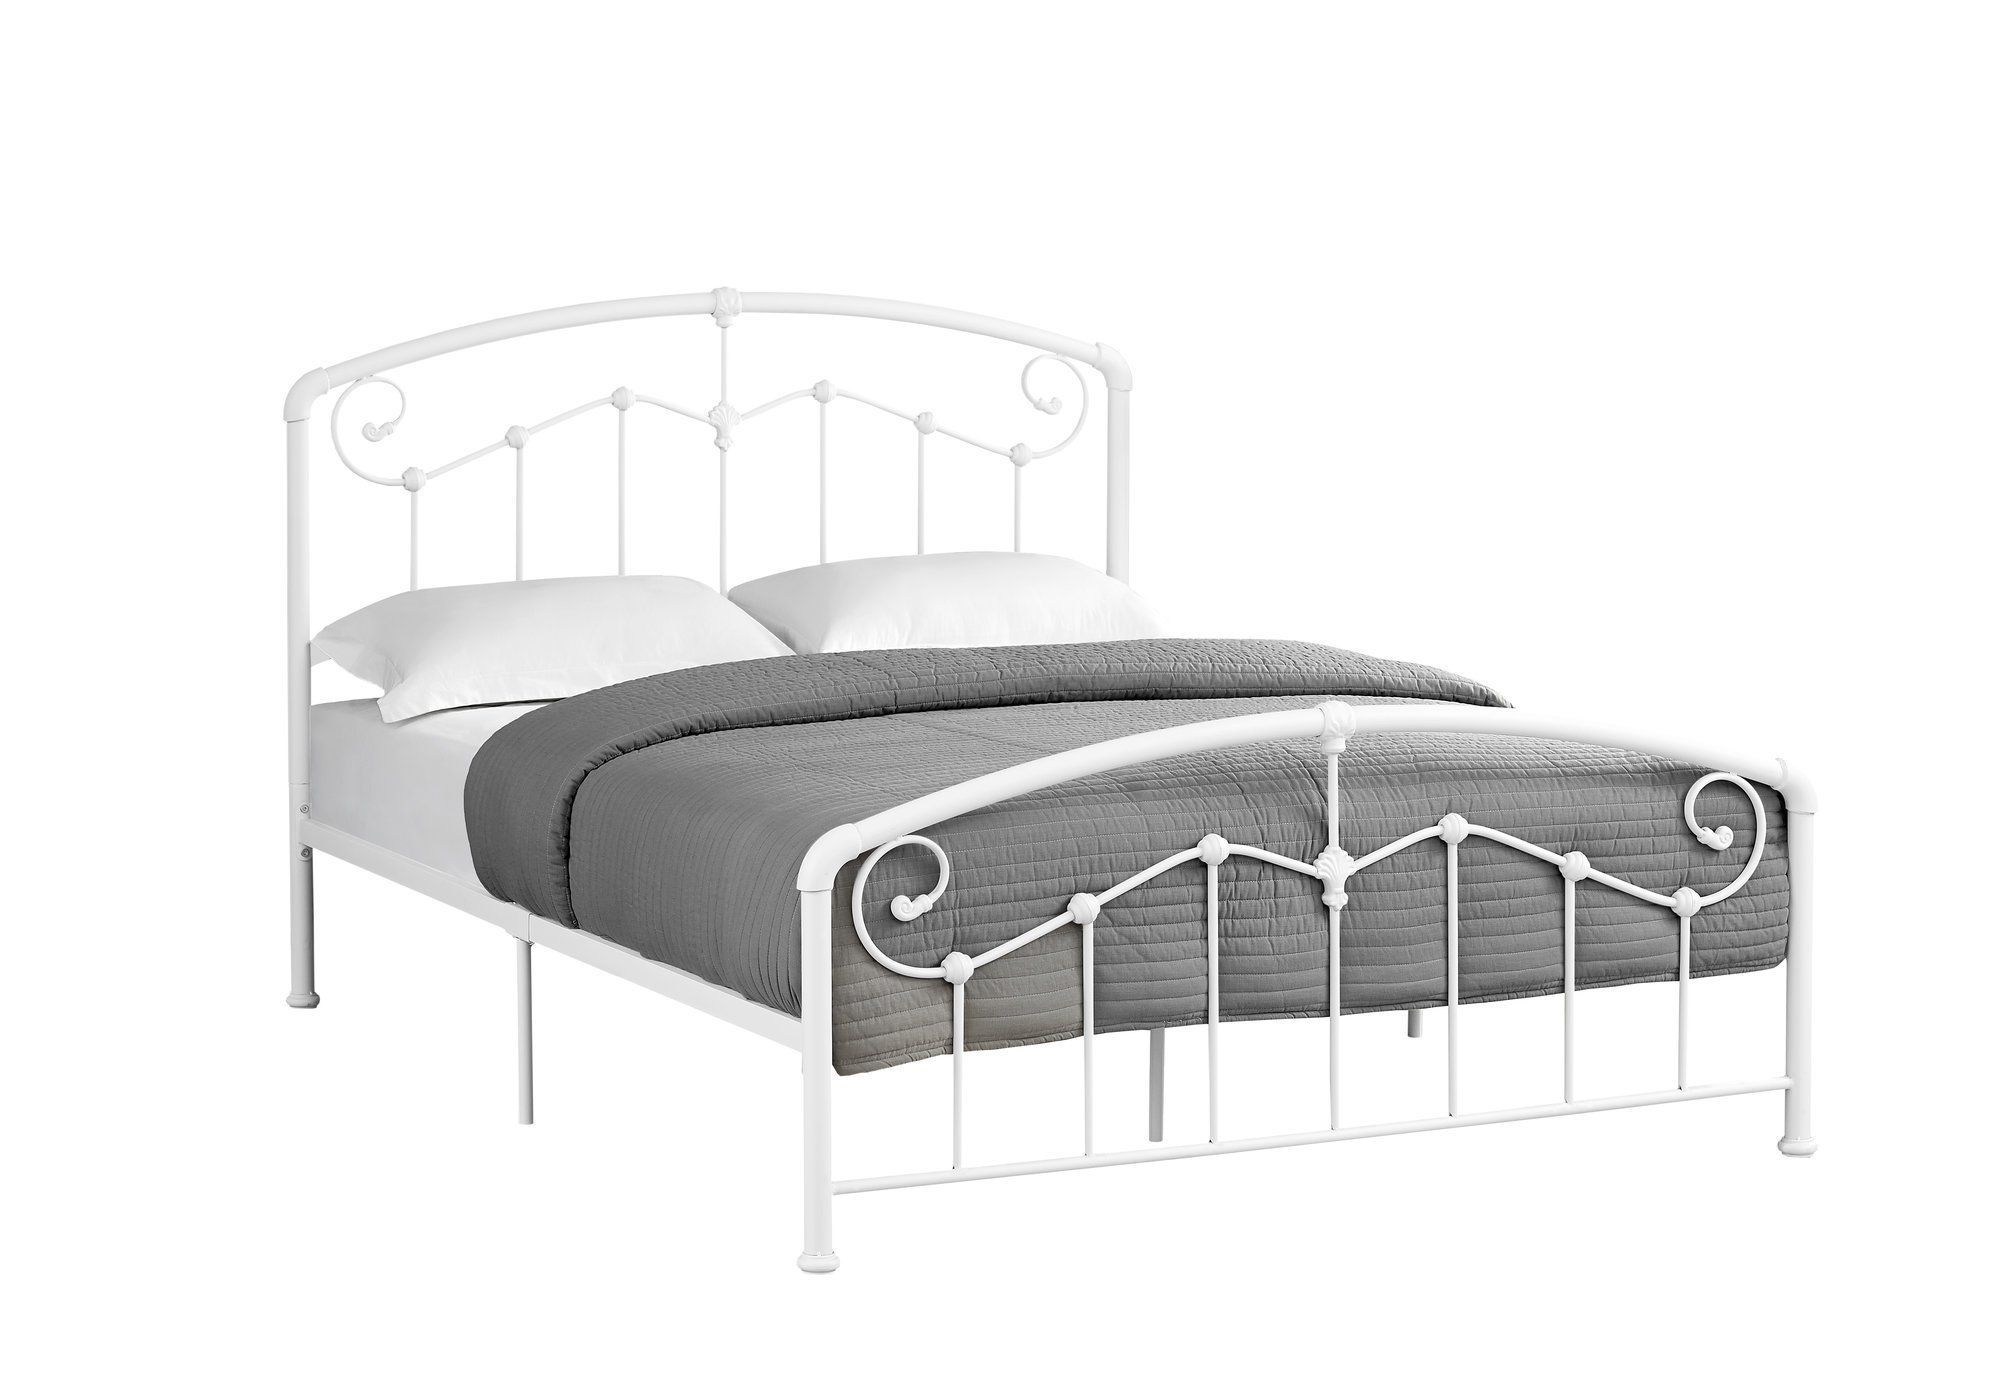 Bed Queen Size White Metal Frame Only Bed frame, Bed